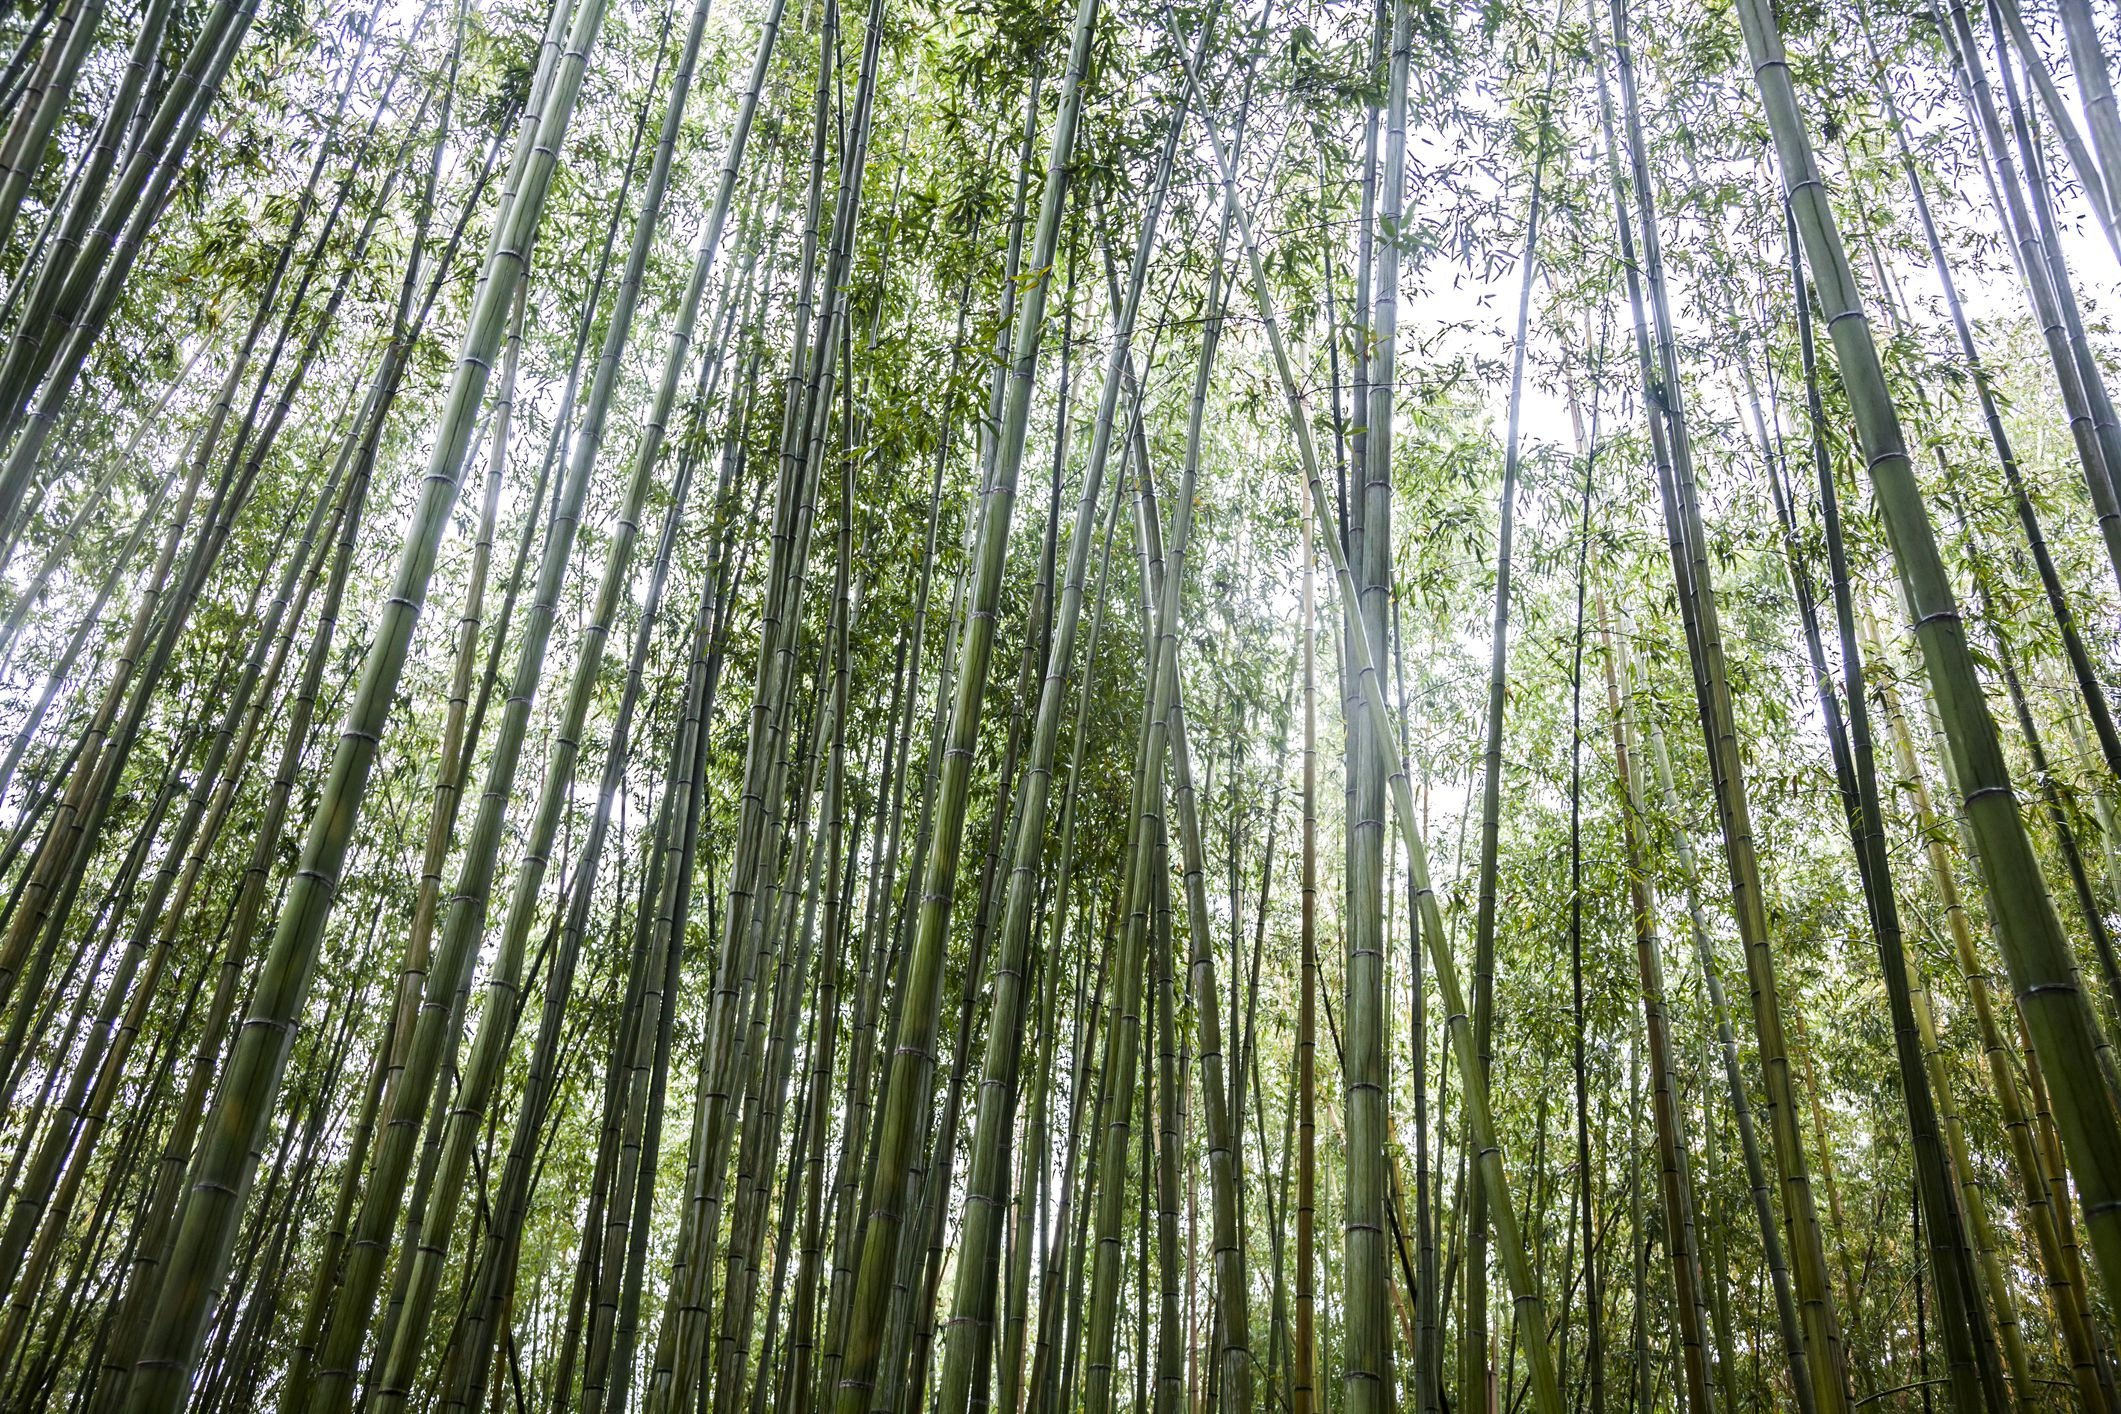 The role of bamboo in japanese culture buycottarizona Image collections